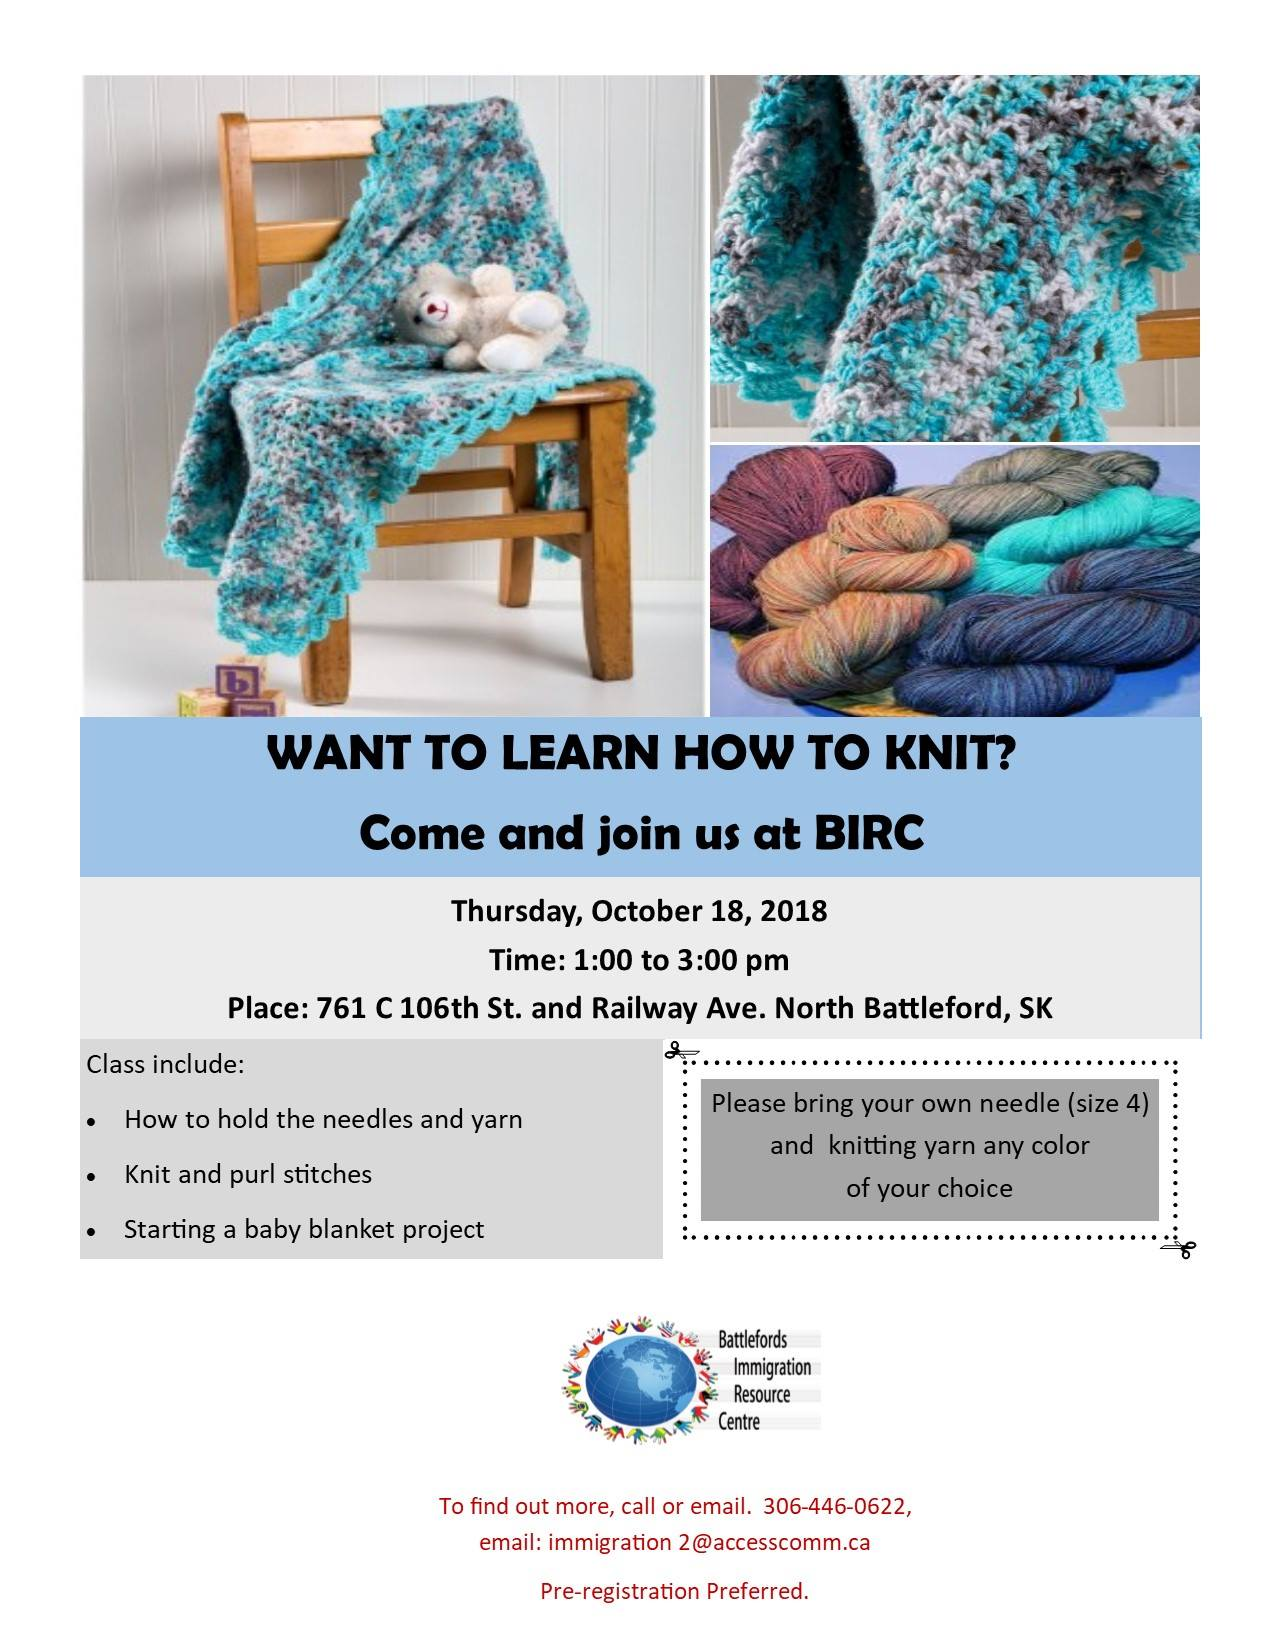 Want to learn how to knit?